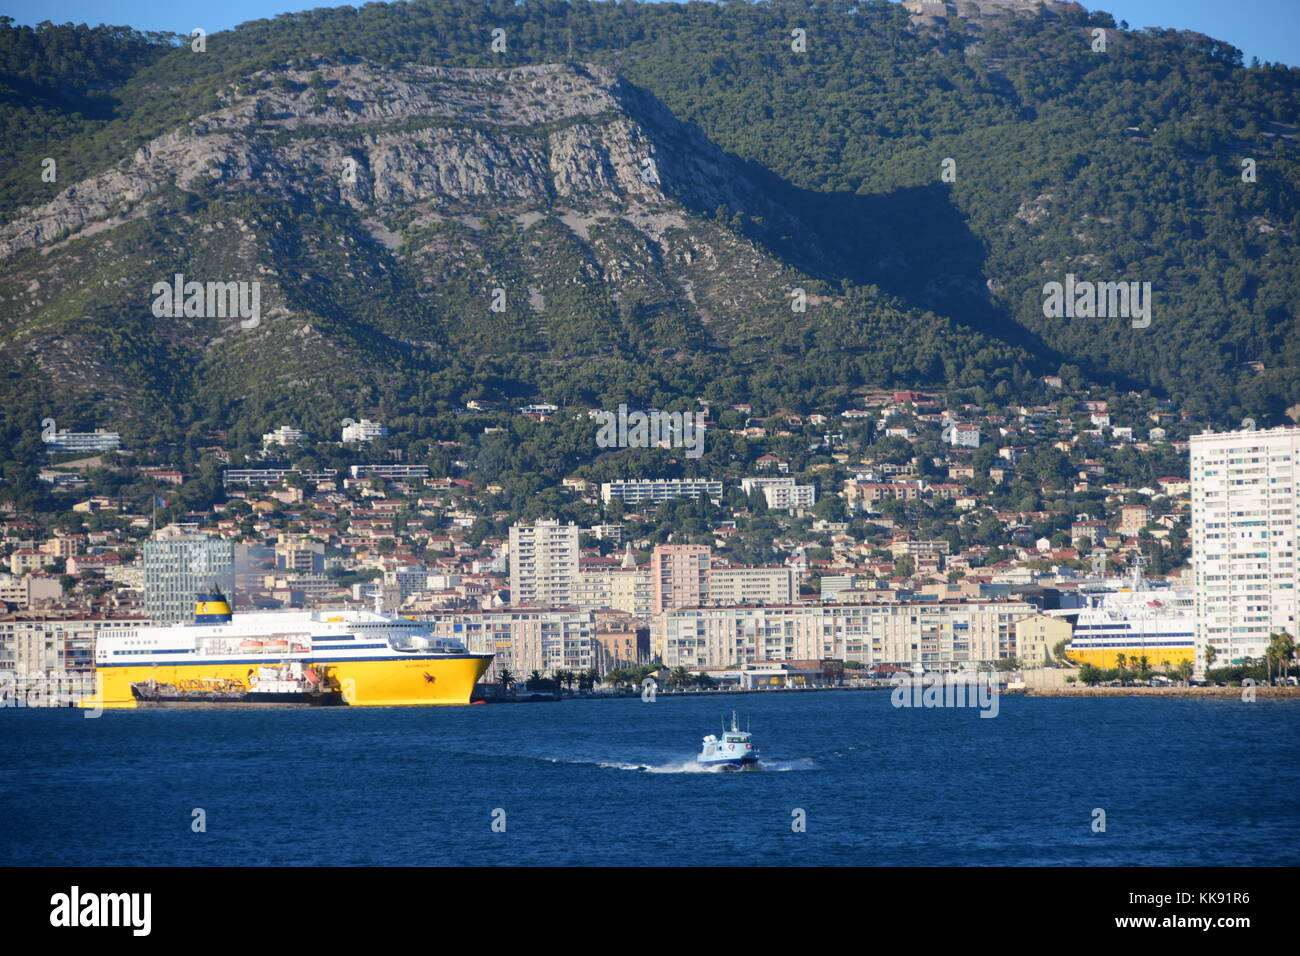 Corsica ferries and sardinia ferries stock photos corsica ferries and sardinia ferries stock - Port toulon corsica ferries ...